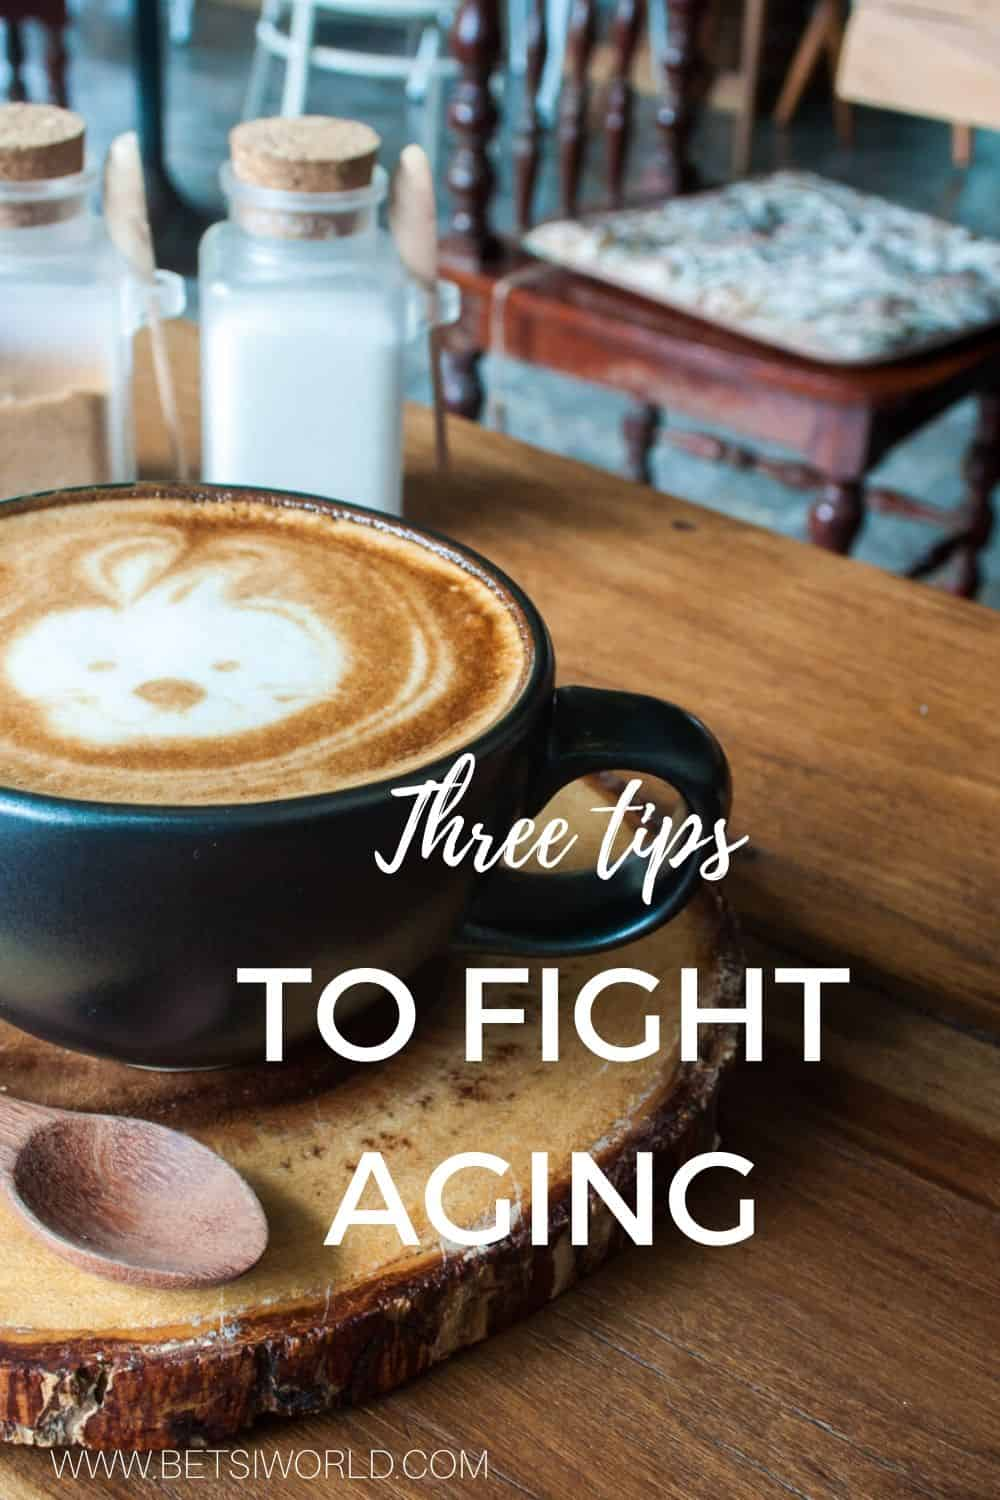 Many of us long for the first cup of coffee in the morning to help jump-start our day. Coffee, or actually the caffeine in coffee is a natural way to fight aging. So next time you pick up that delicious cup of coffee, remember you are fighting aging!  For more health tips and healthy recipes, visit www.betsiworld.com #coffee #healthycoffee #caffeine